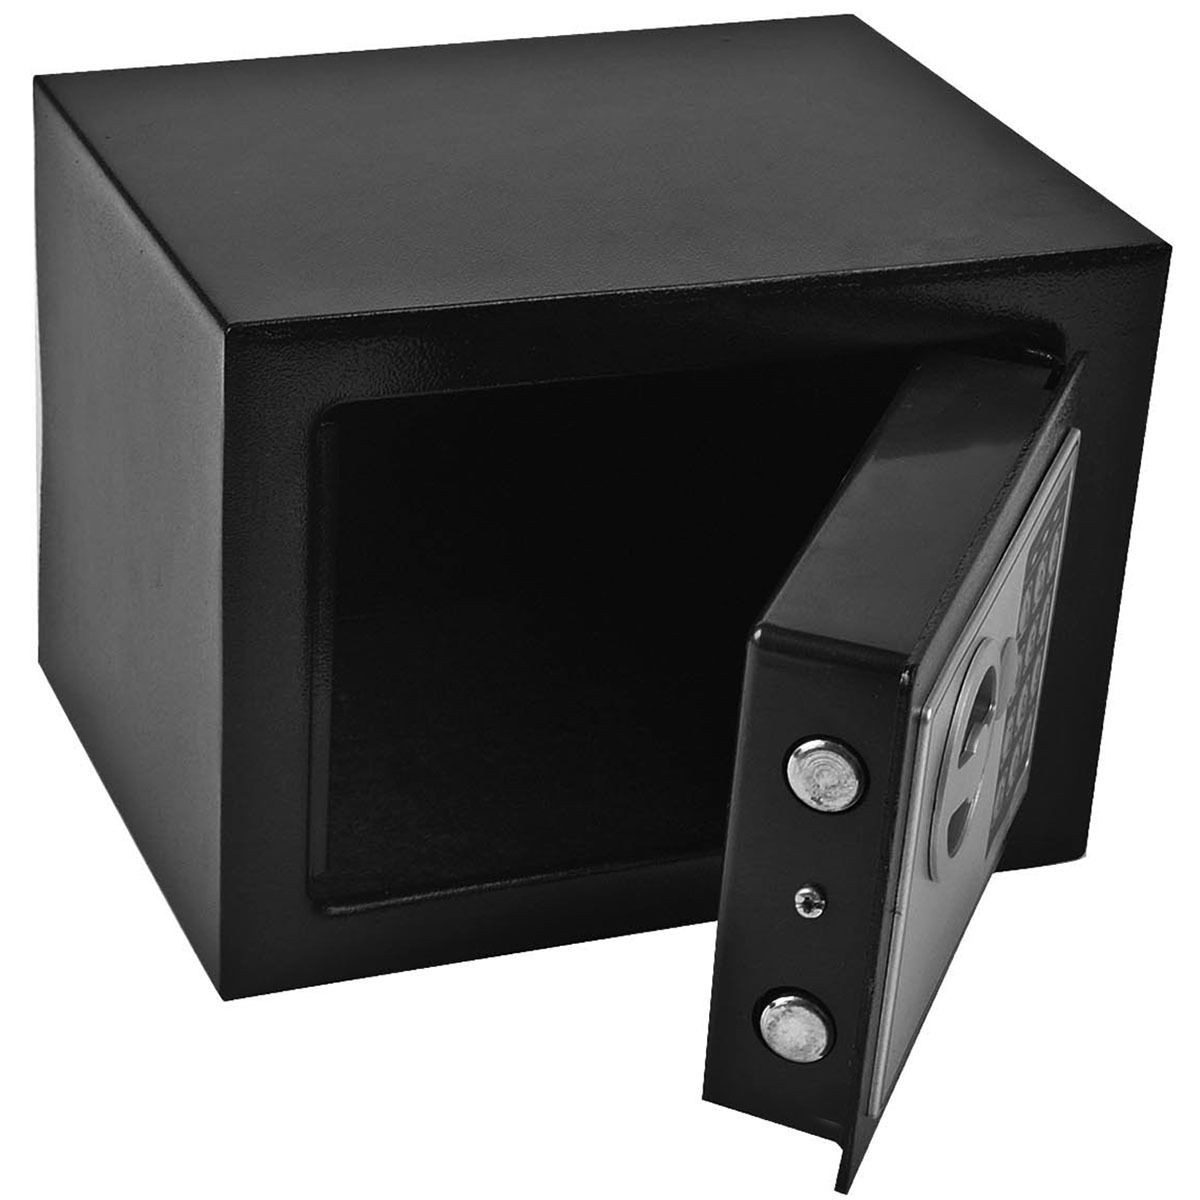 Digital electronic small safe box keypad lock home office for Small safe box for home